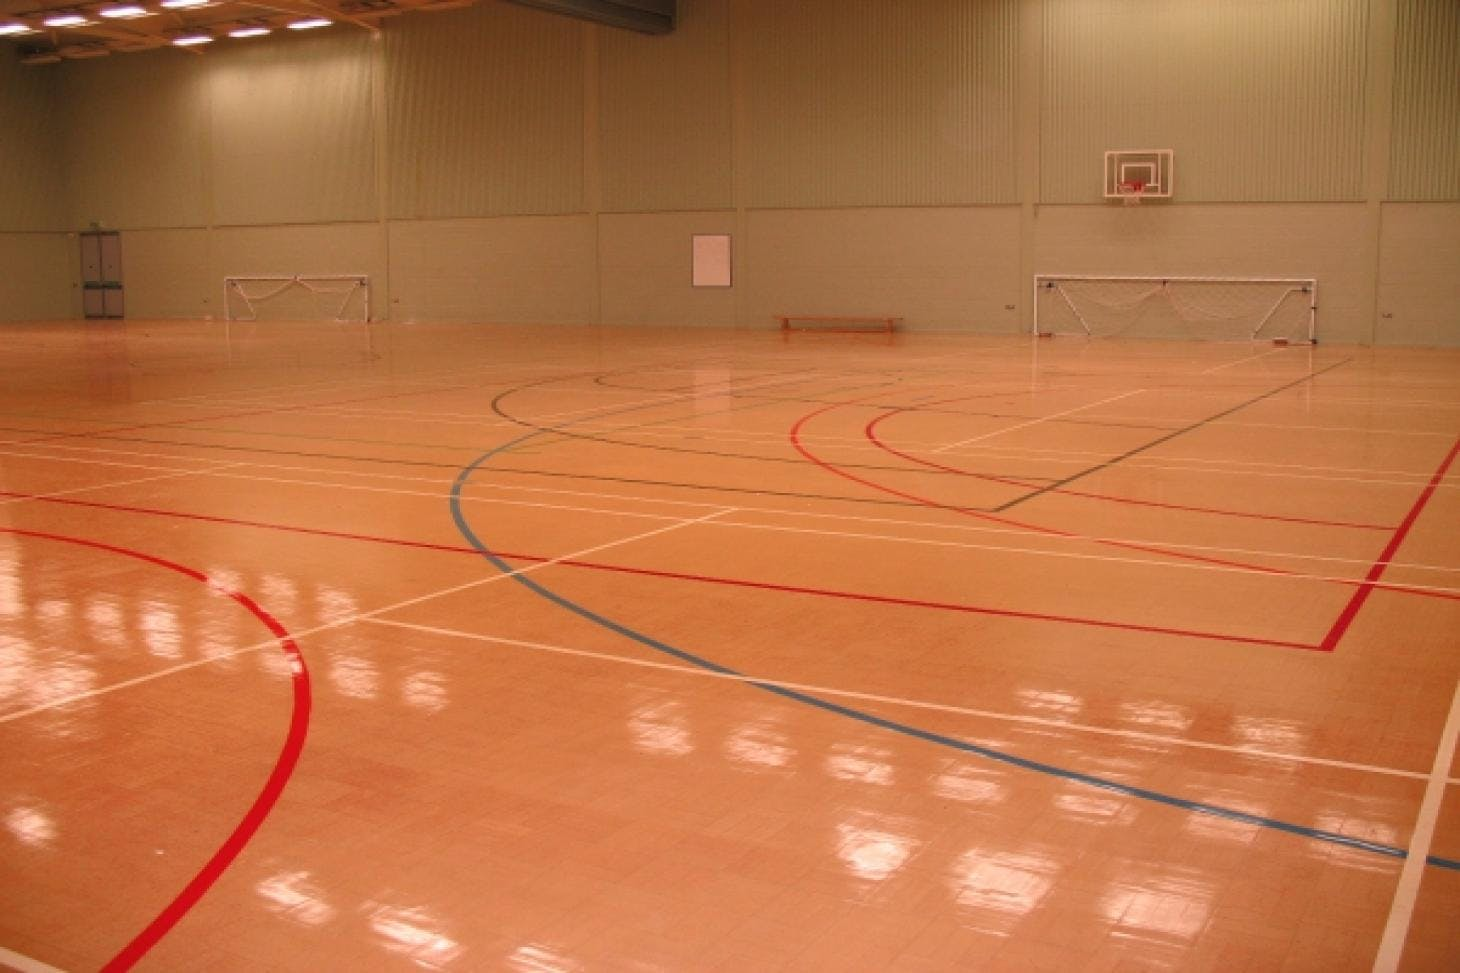 Herschel Sports 5 a side | Indoor football pitch